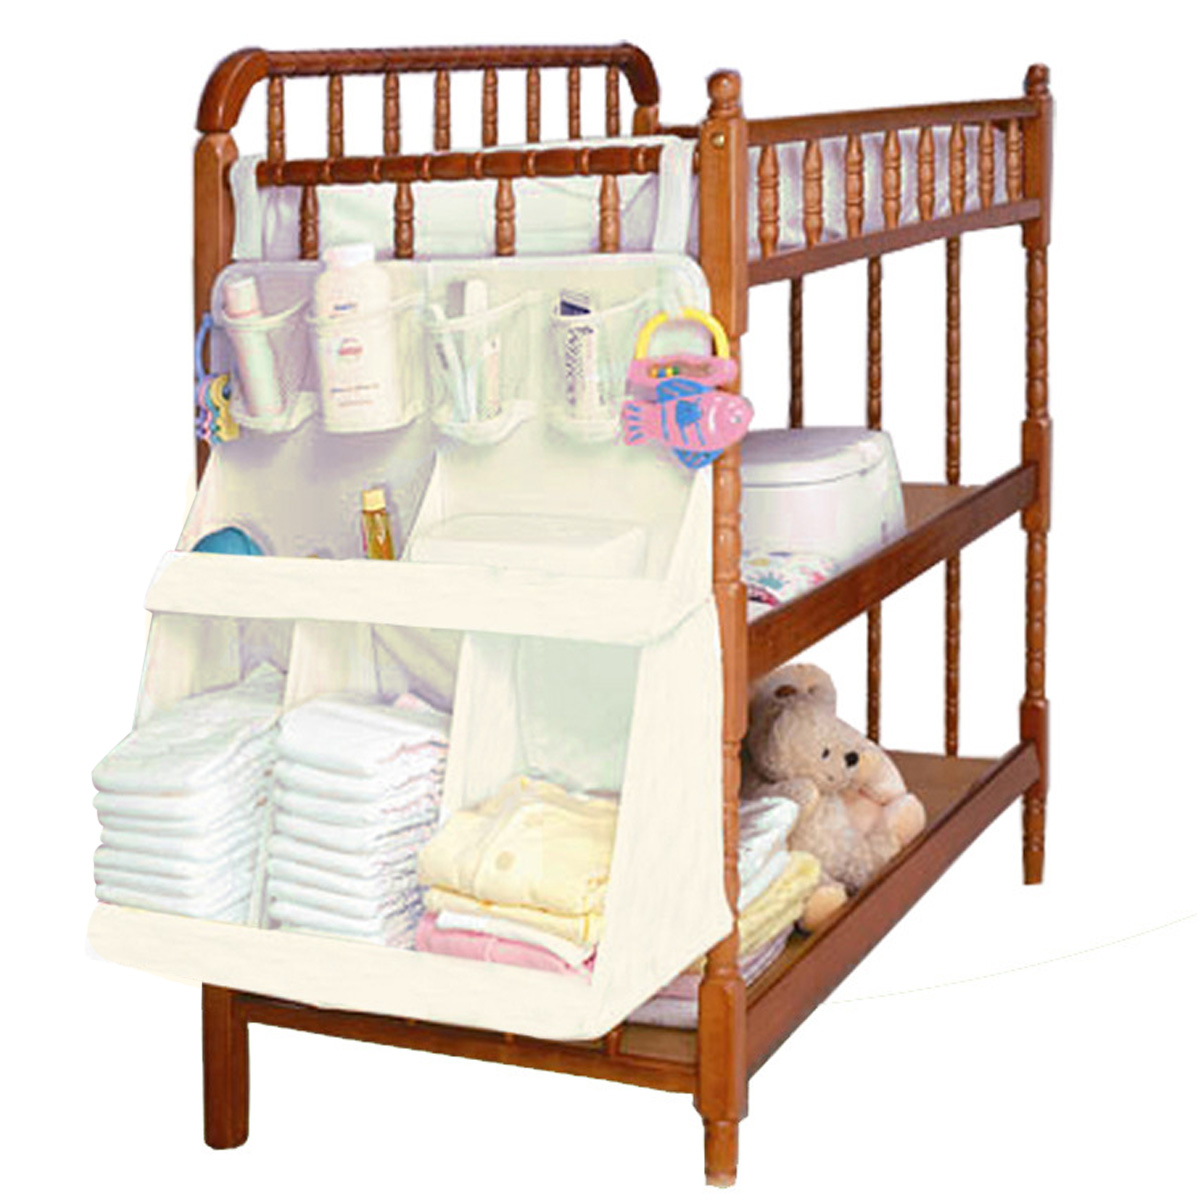 Baby bed accessories - Baby Bedding Set Accessories Waterproof Diapers Organizer Baby Crib Bed Hanging Bag Portable Storage Bag